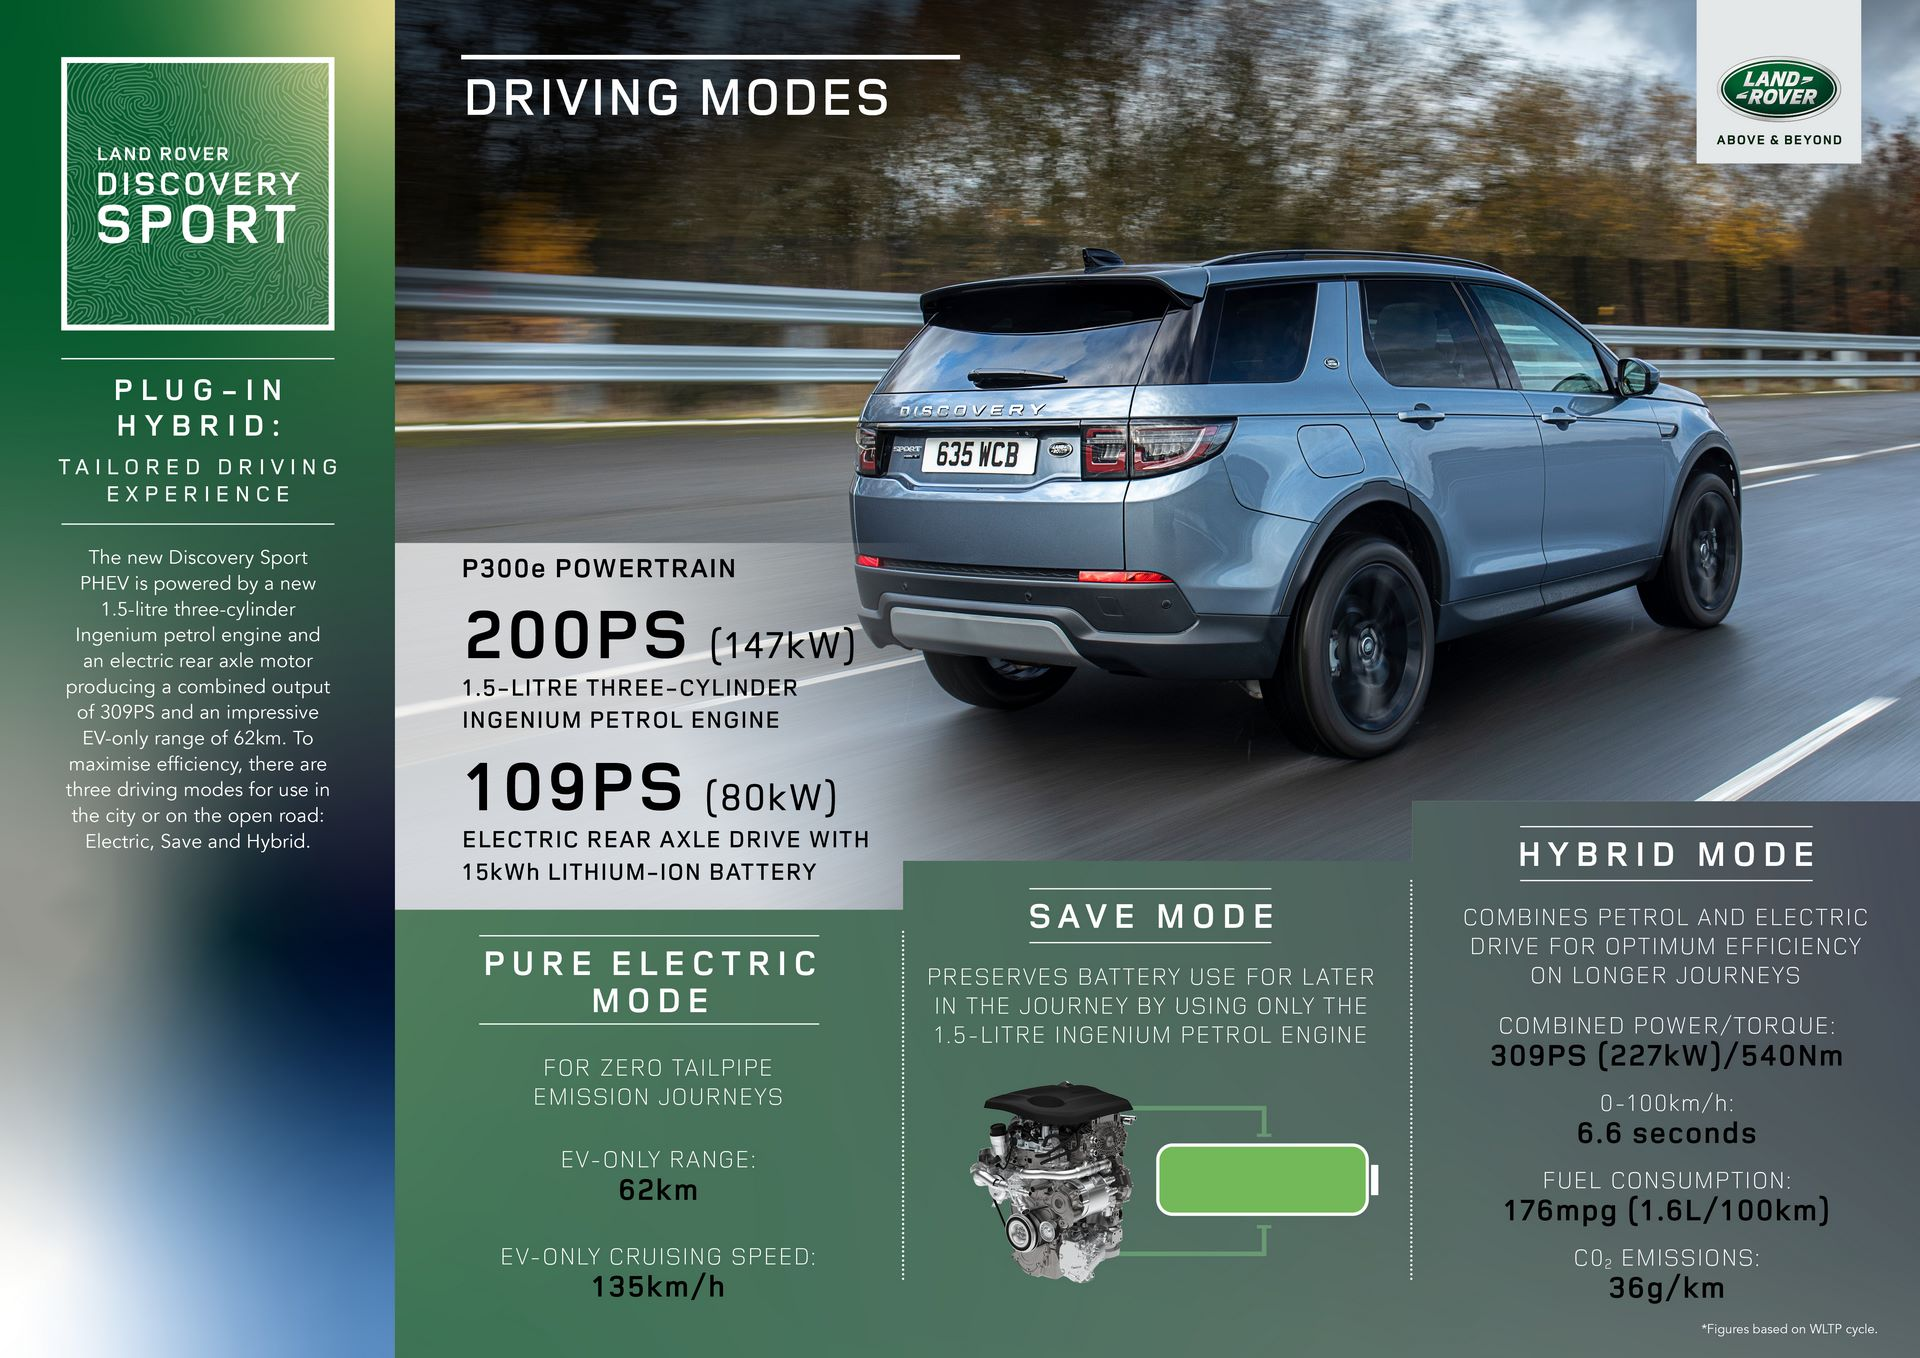 Plug-in-hybrid-Land-Rover-Discovery-Sport-PHEV-8